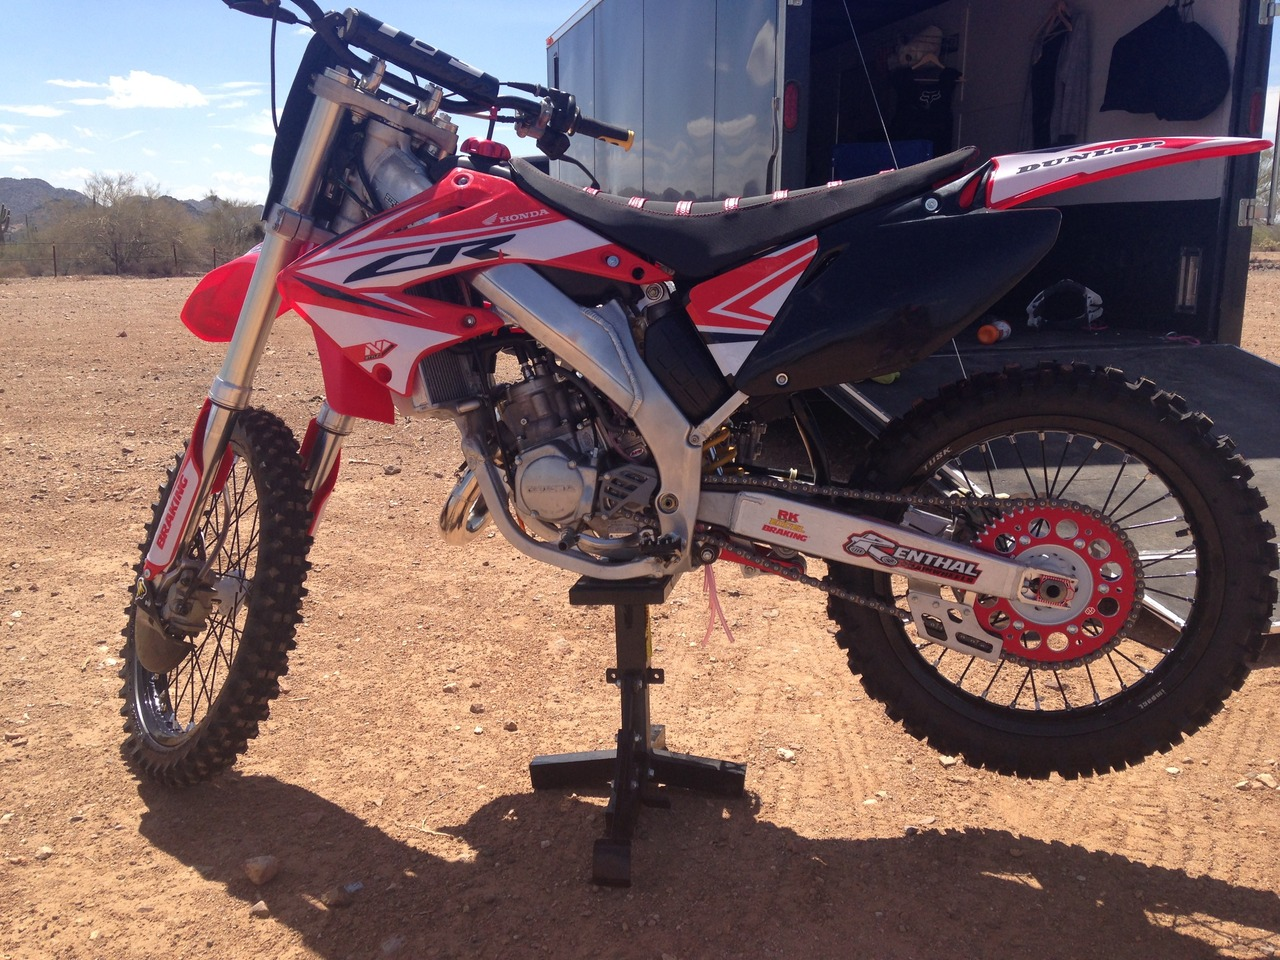 2002 Honda Cr Series 125R5, motorcycle listing